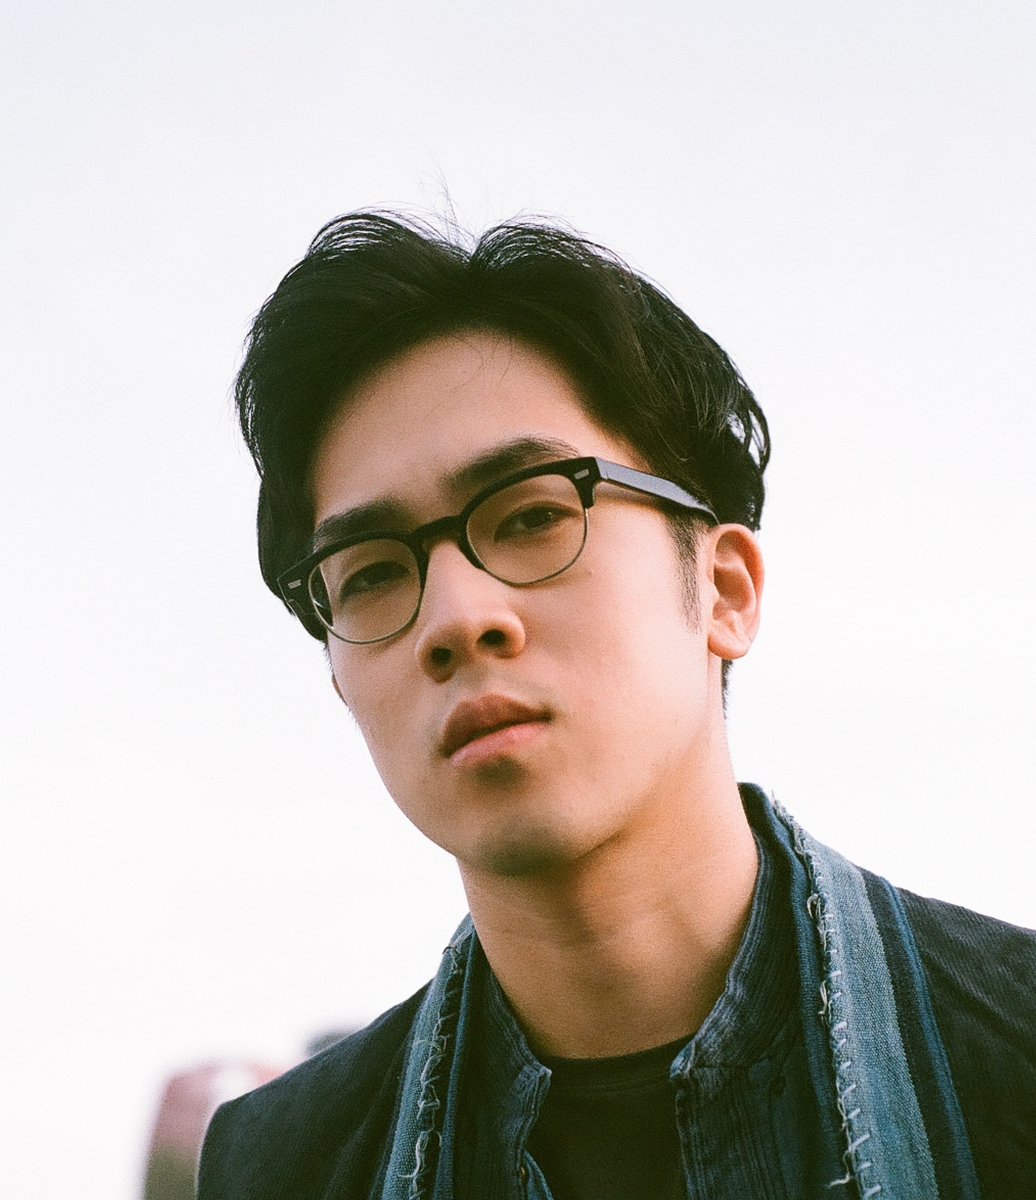 Singapore's electro-pop rising star Charlie Lim shares sumptuous new single 'Zero-Sum' prior to album release